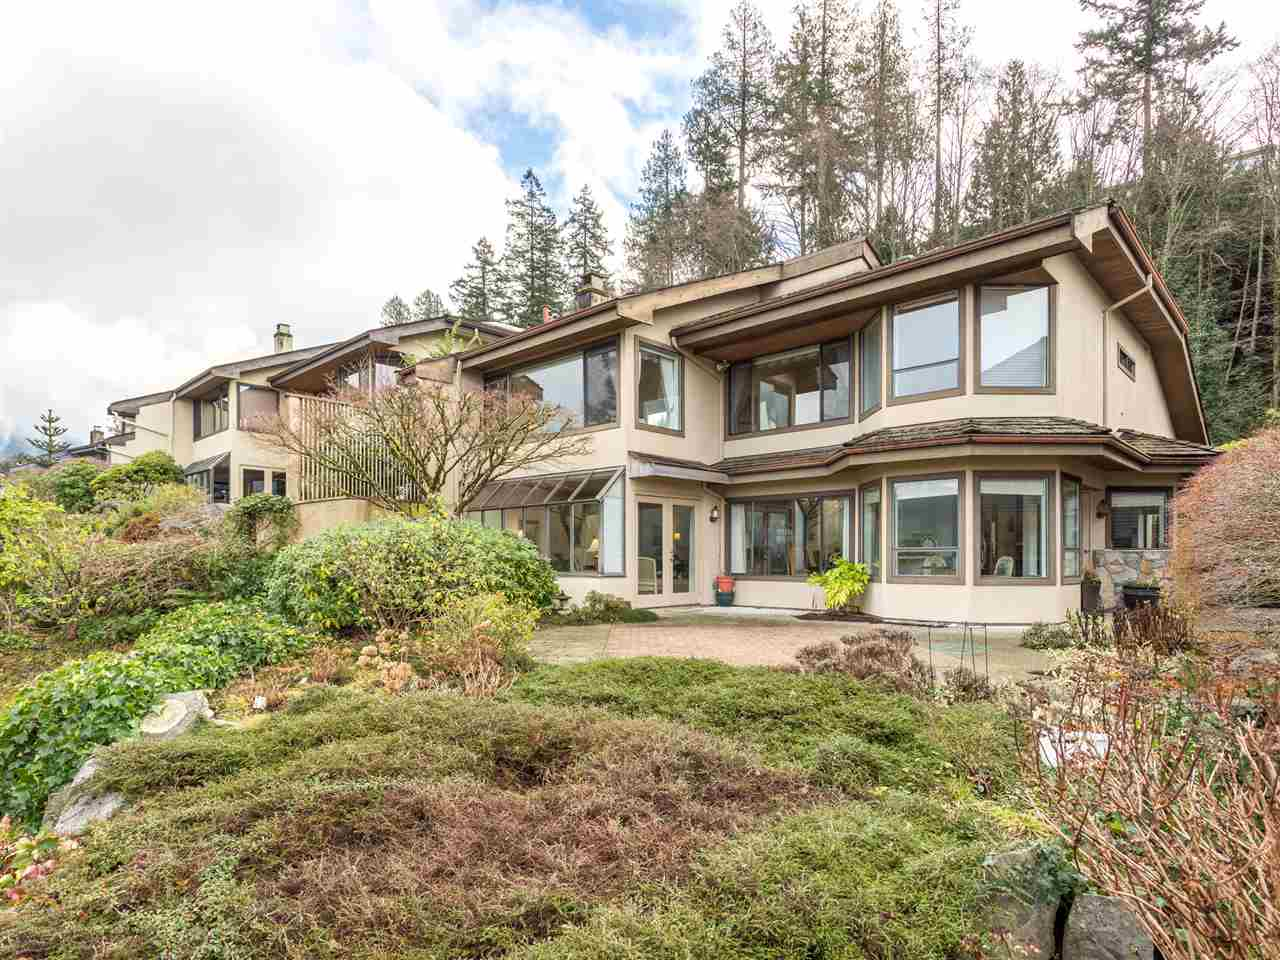 Main Photo: 5150 MEADFEILD ROAD in West Vancouver: Upper Caulfield Condo for sale : MLS®# R2031095